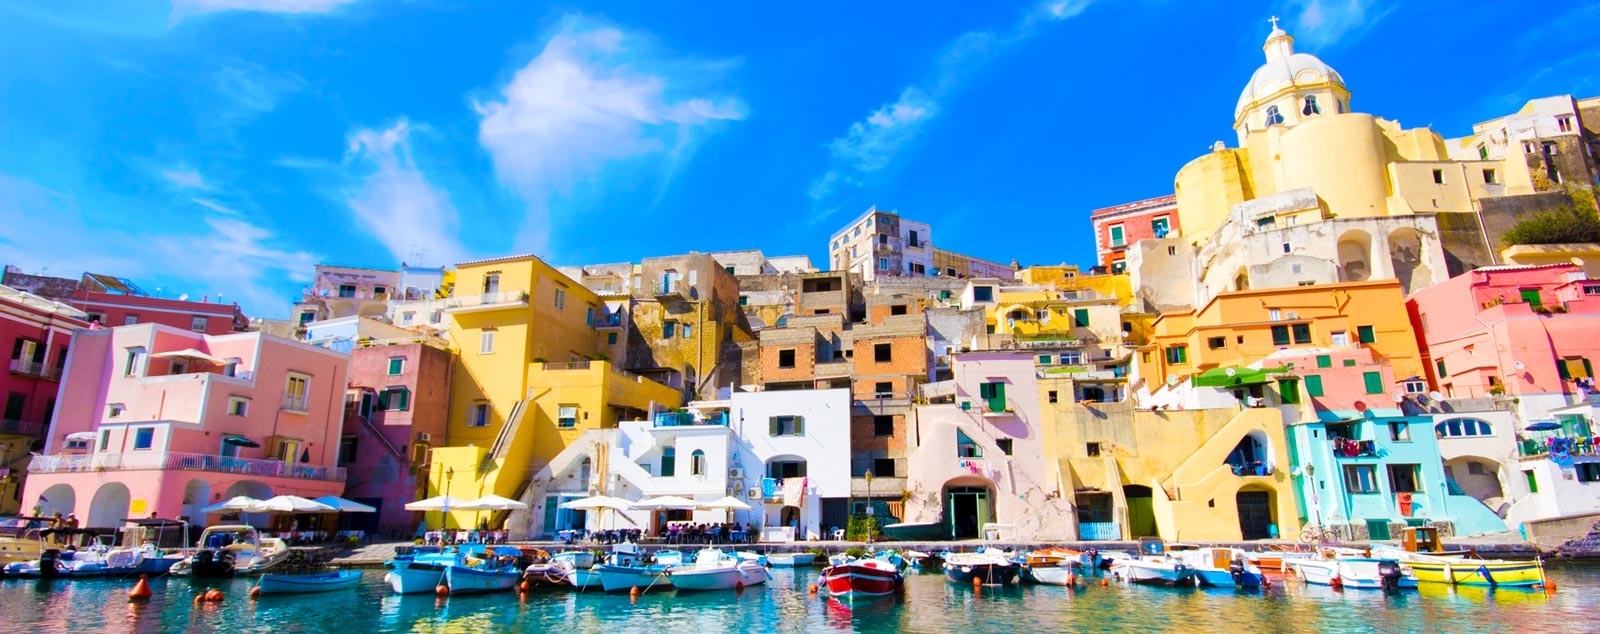 A variety of dingys are harboured infront of a marina with multi-coloured flat roofed houses, typical of the Italian riviera lining the shore